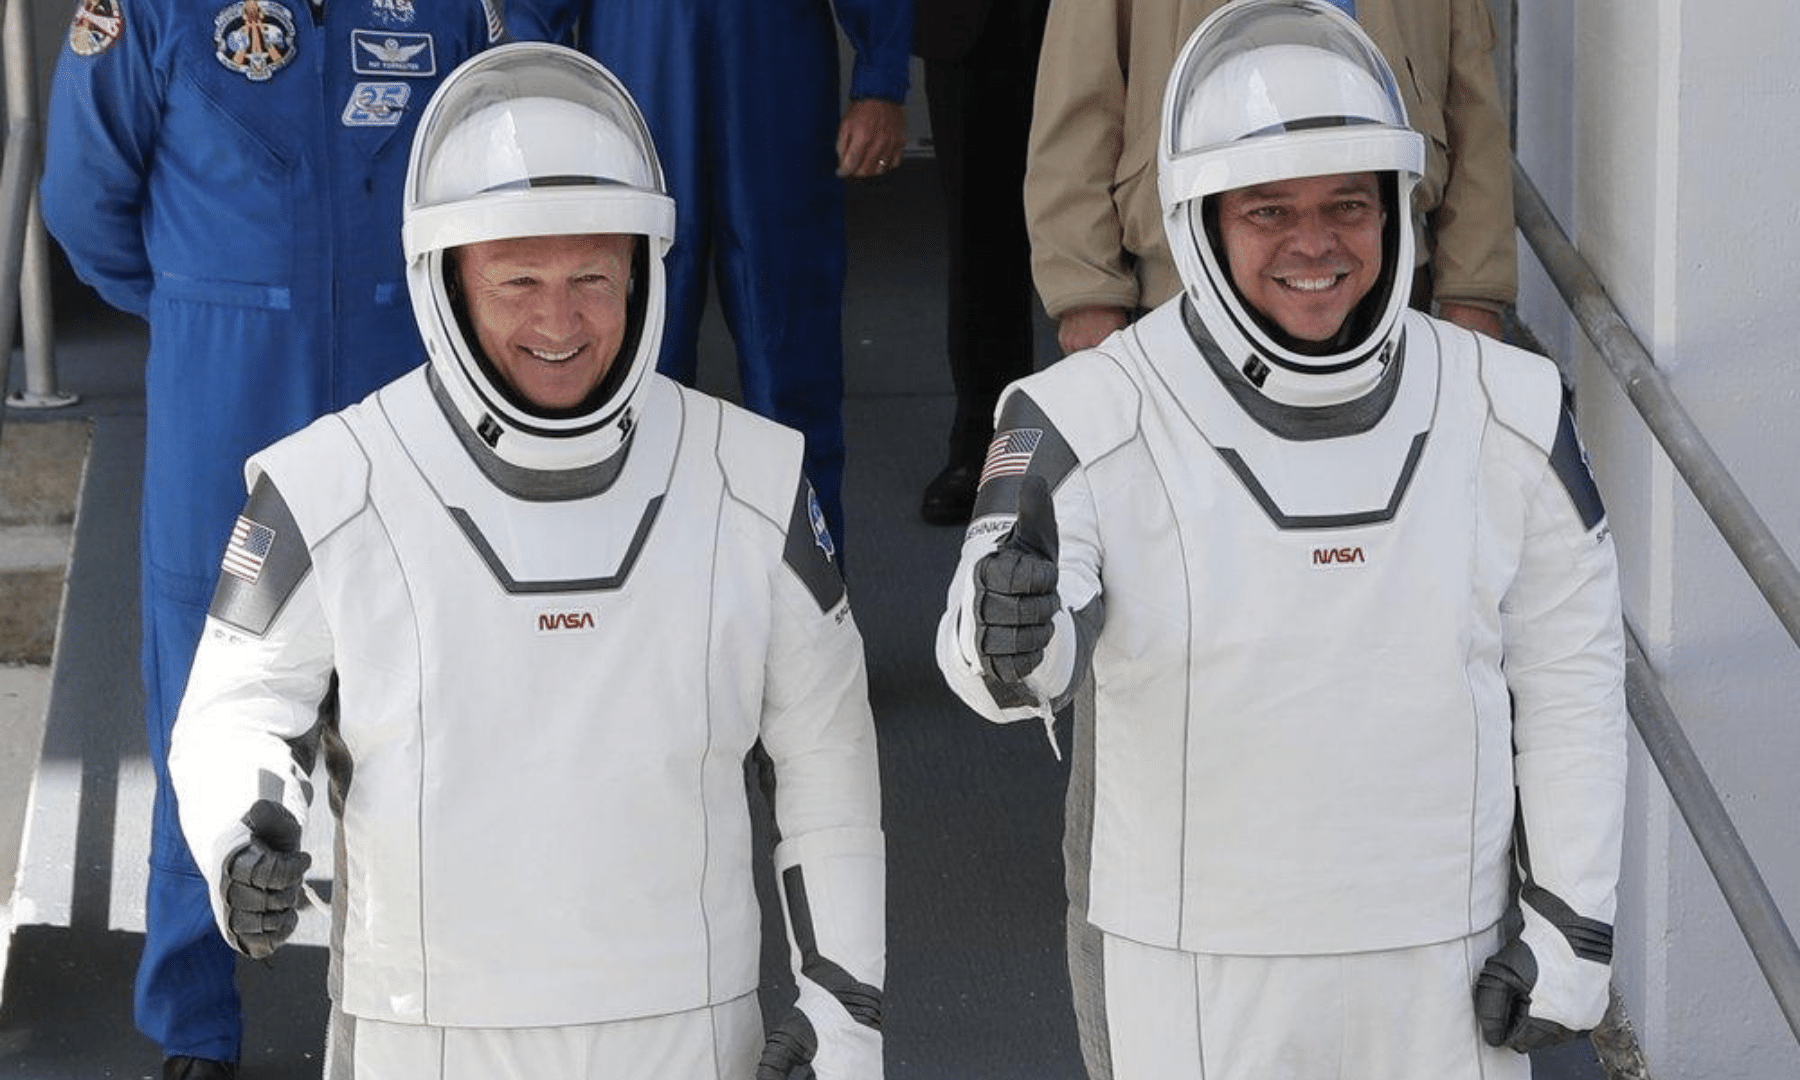 In this May 30, 2020 file photo, Nasa astronauts Douglas Hurley and Robert Behnken walk out of the Neil Armstrong Operations and Checkout Building on their way to Pad 39-A, at the Kennedy Space Center in Cape Canaveral. — AP